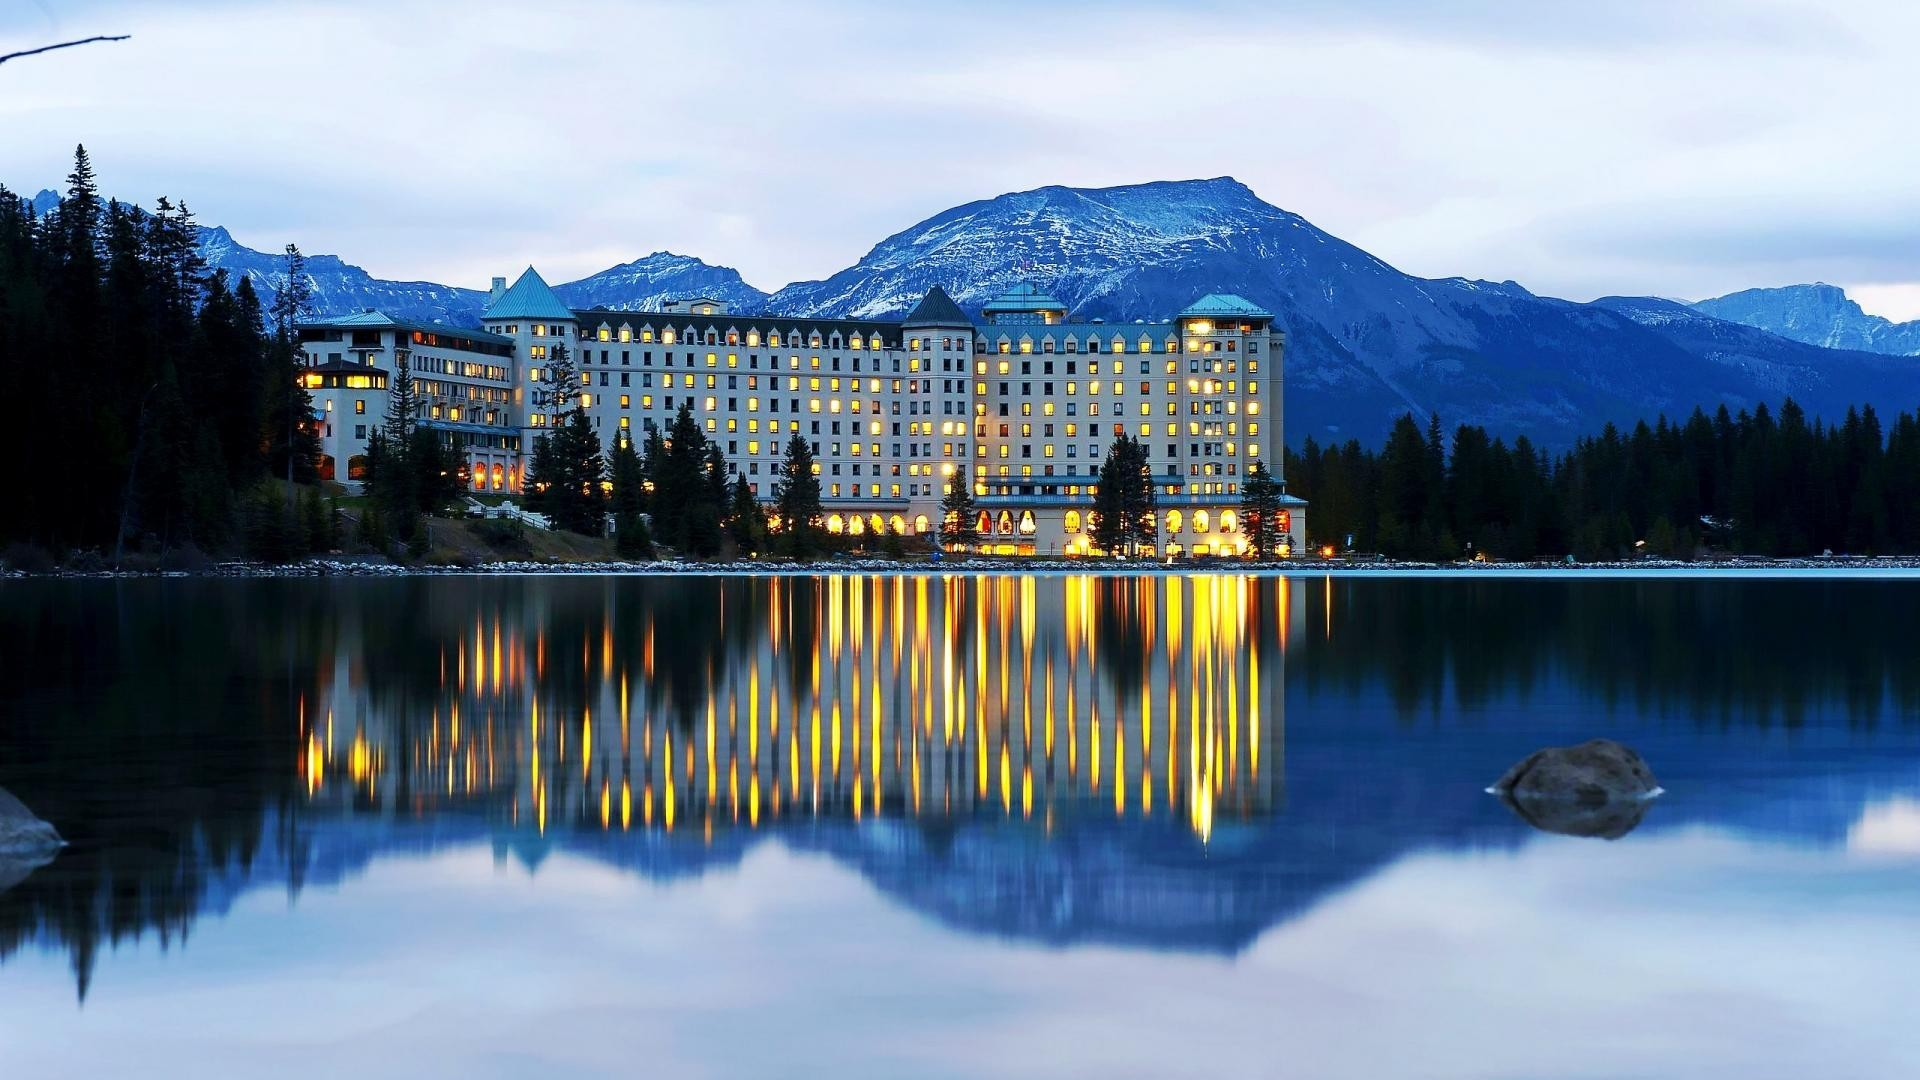 Fairmont chateau on lake louise near banff wallpaper